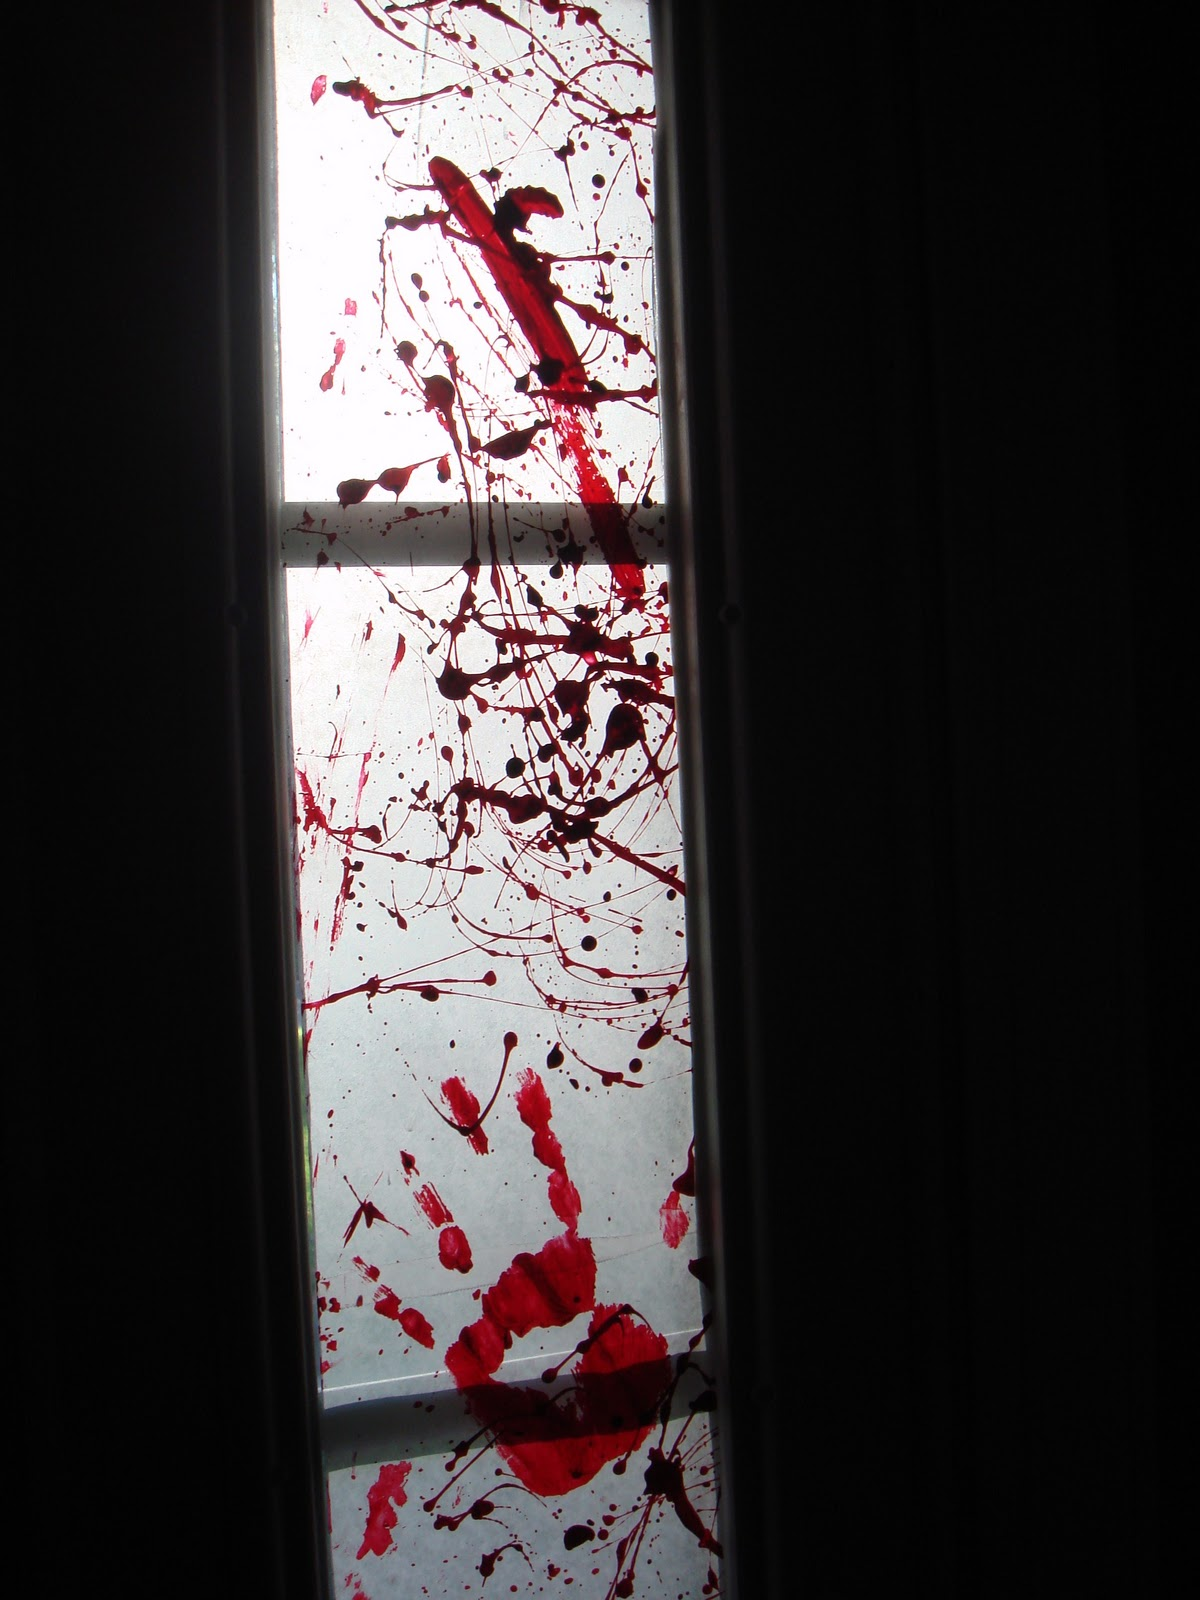 Halloween window decorations - Blood Spattered Windows